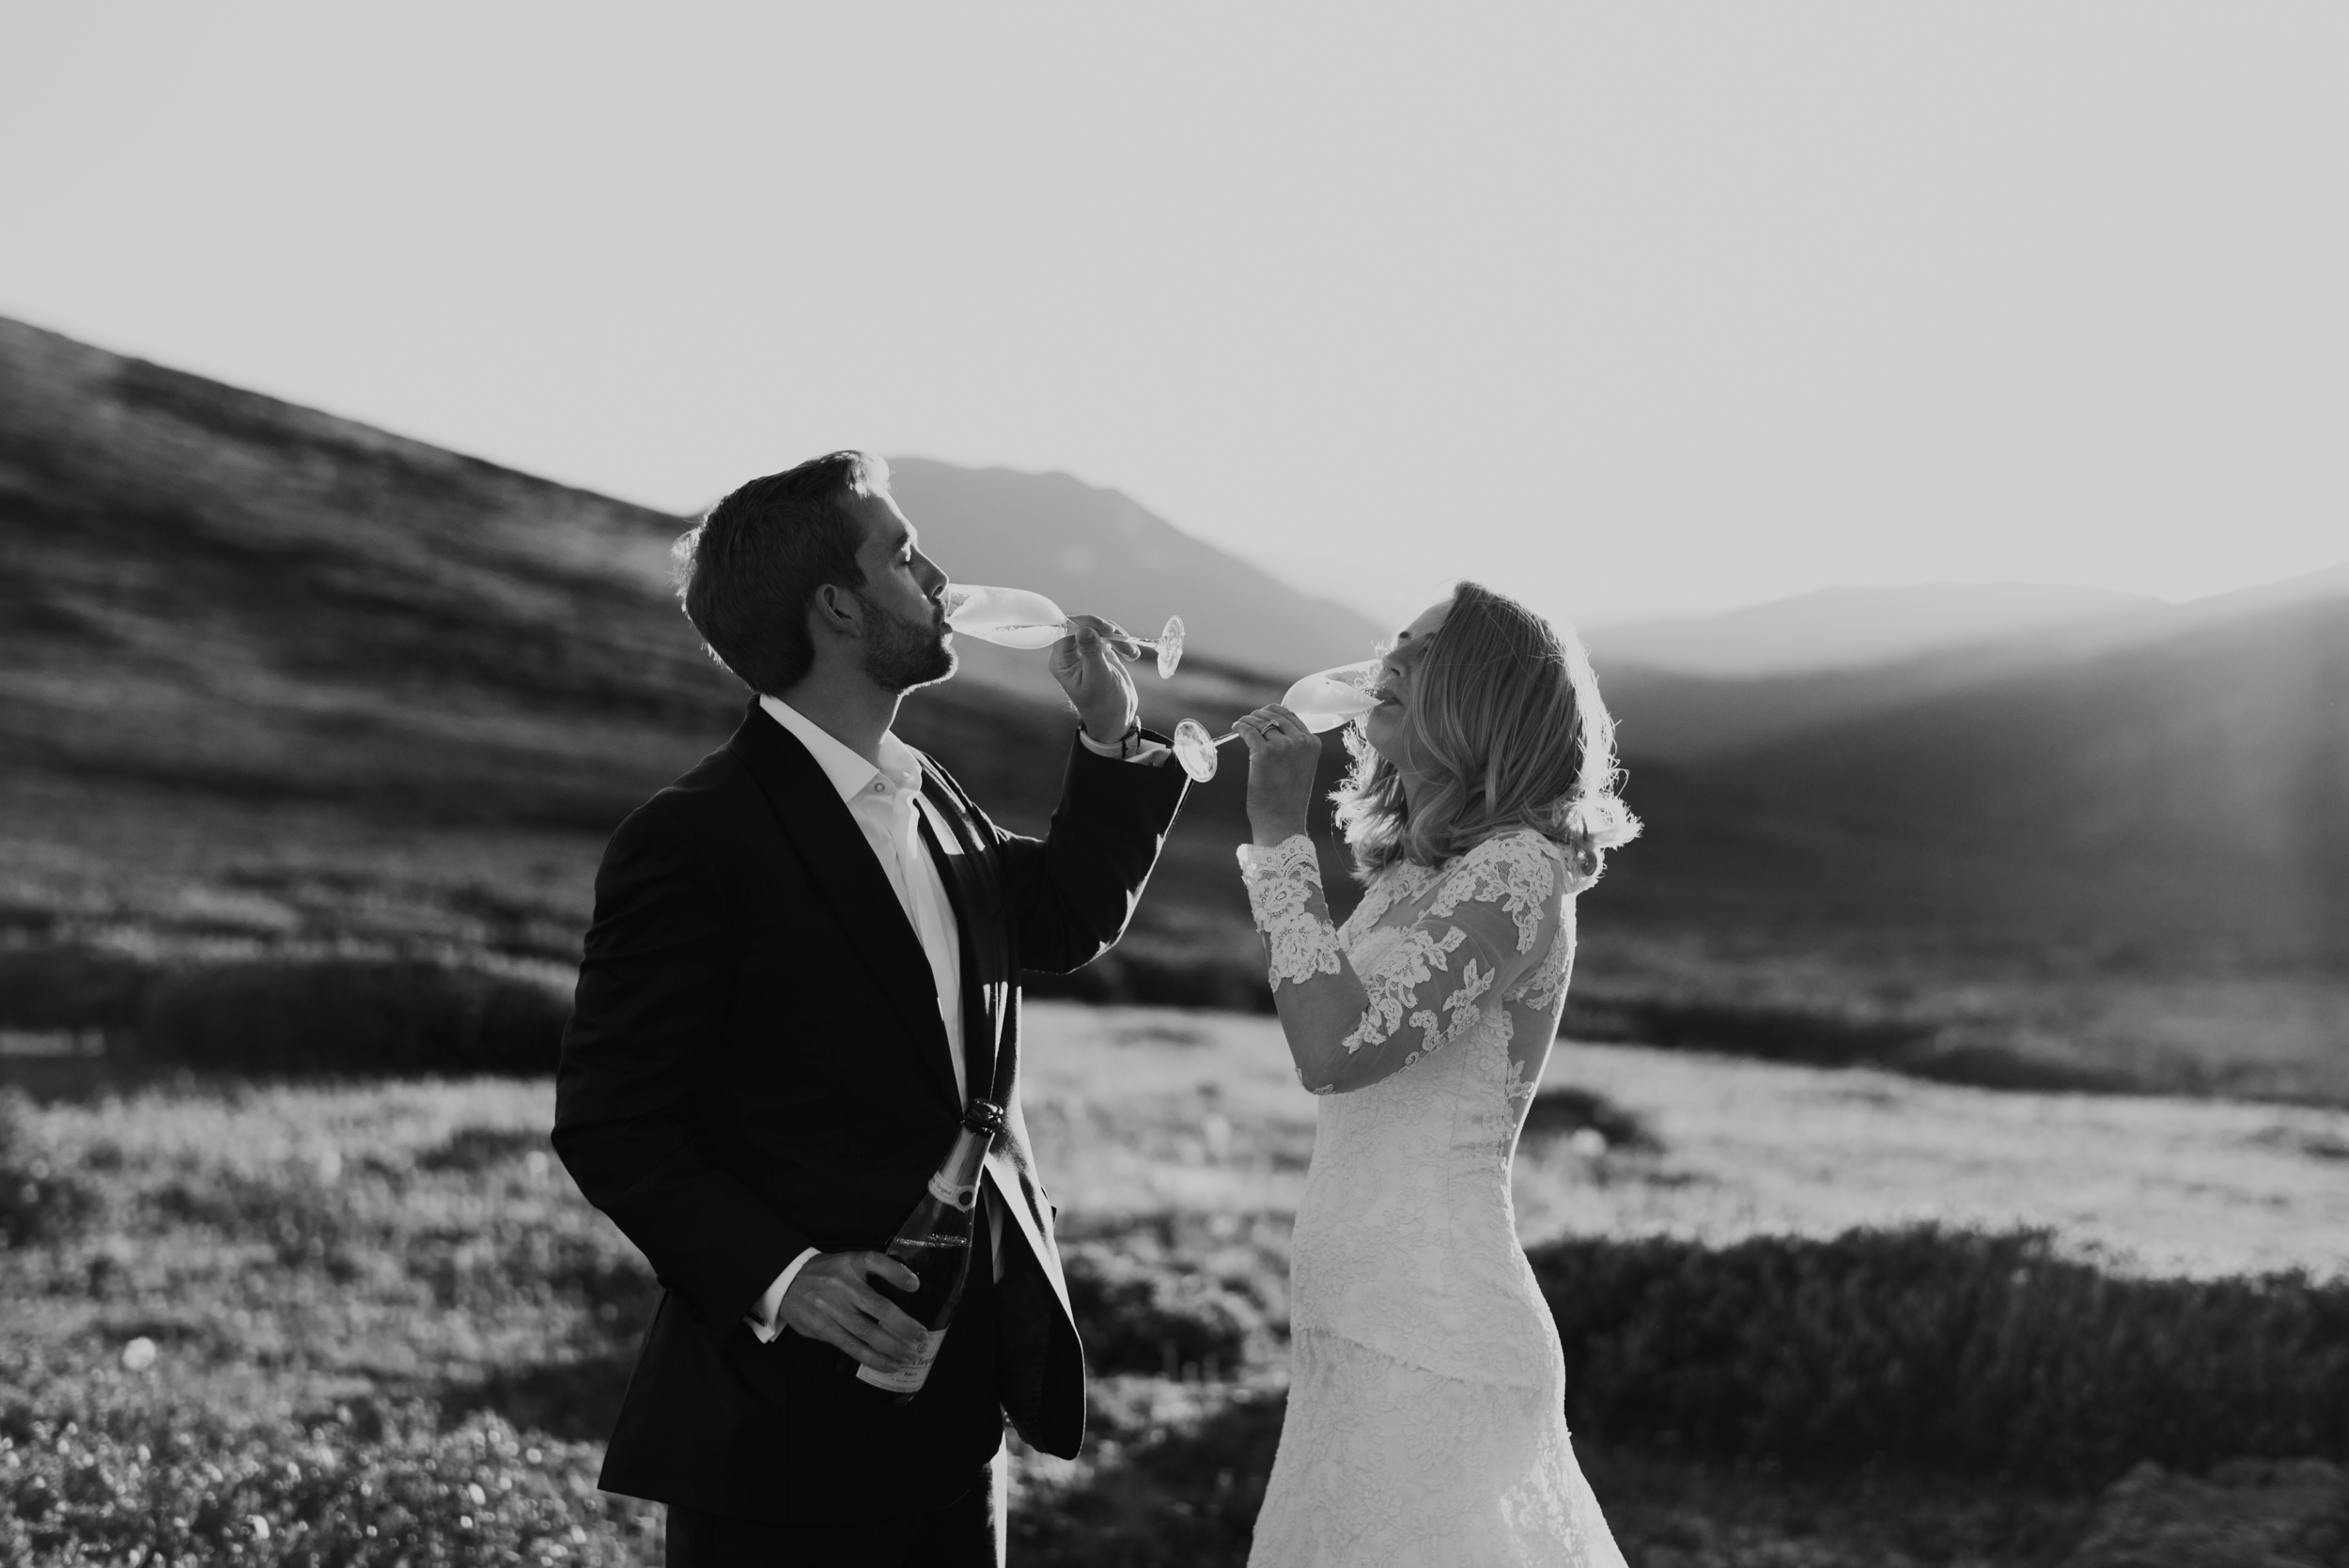 Independence Pass elopement in Colorado. Aspen elopement and wedding photographer.